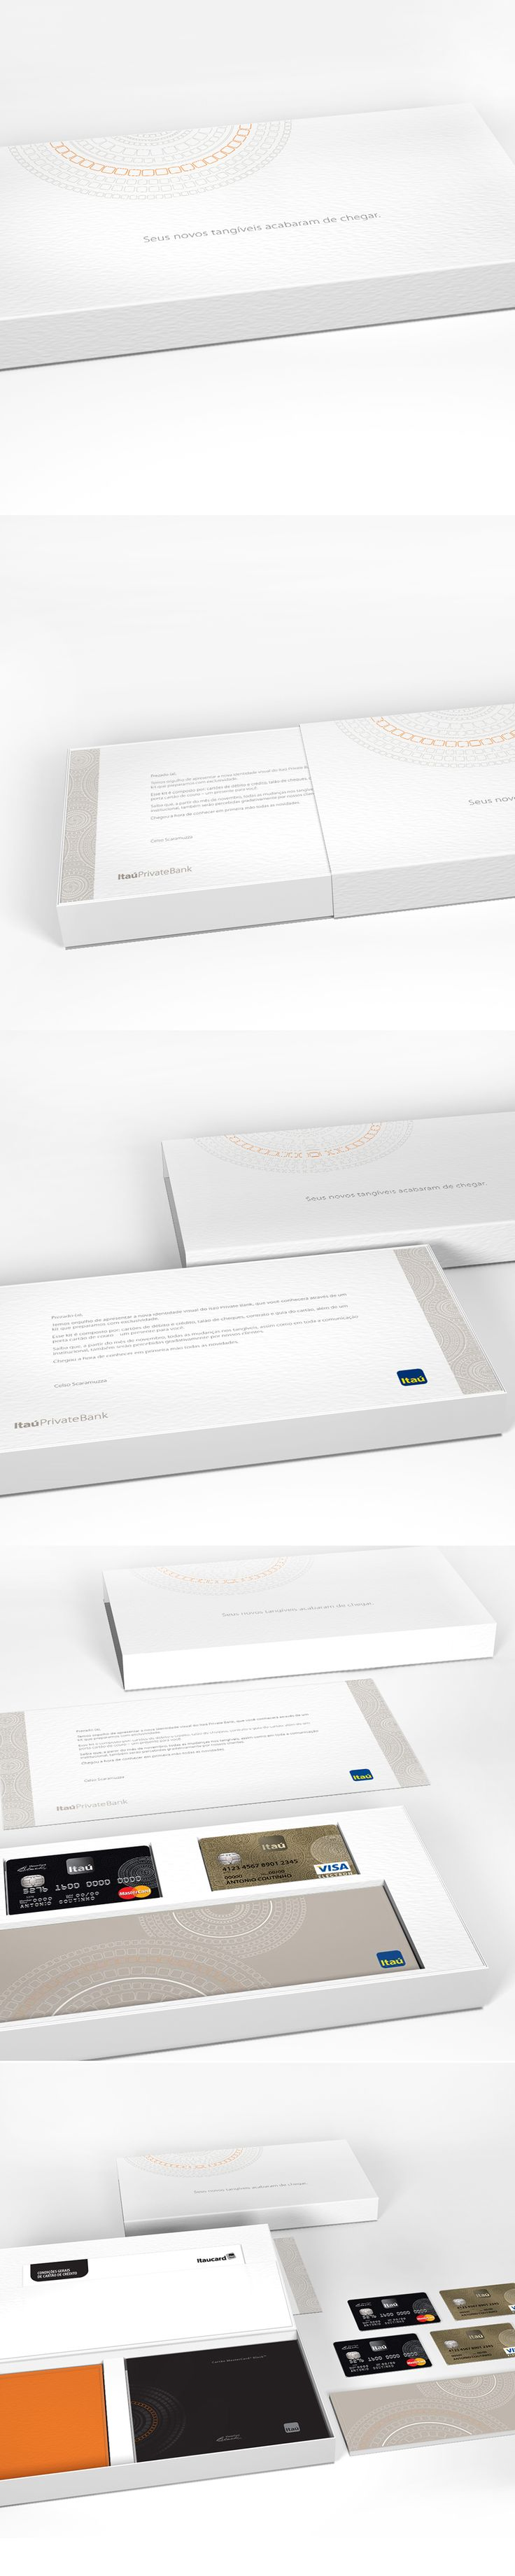 Welcome Kit Itaucard Private Bank